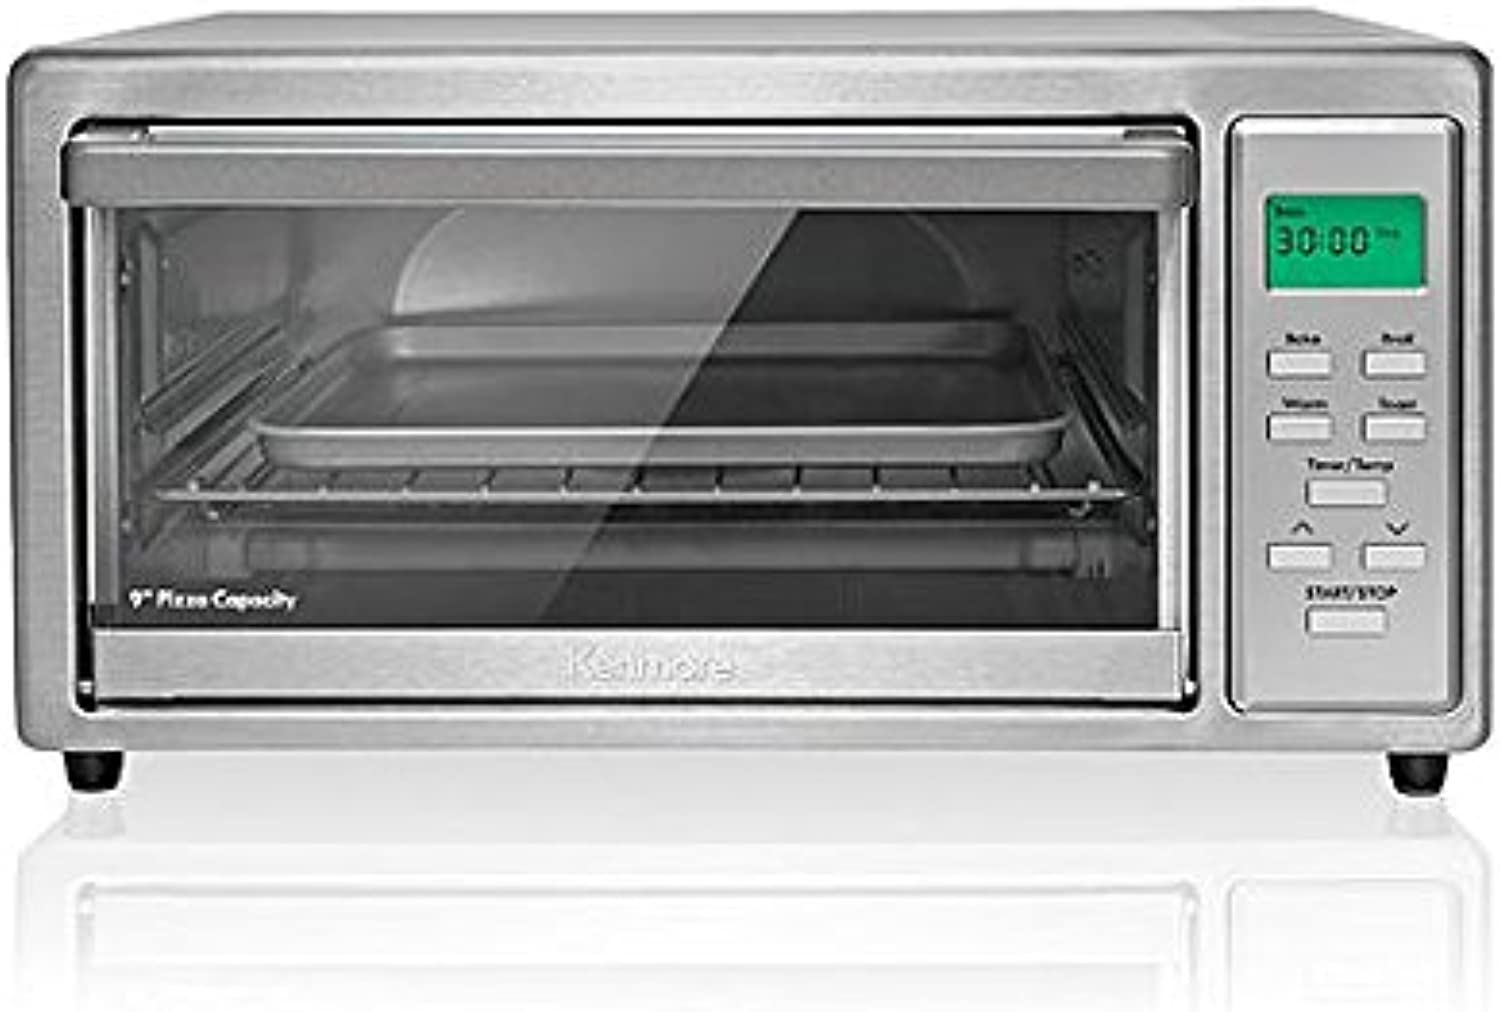 Kenmore 4-slice Stainless Steel Toaster Oven